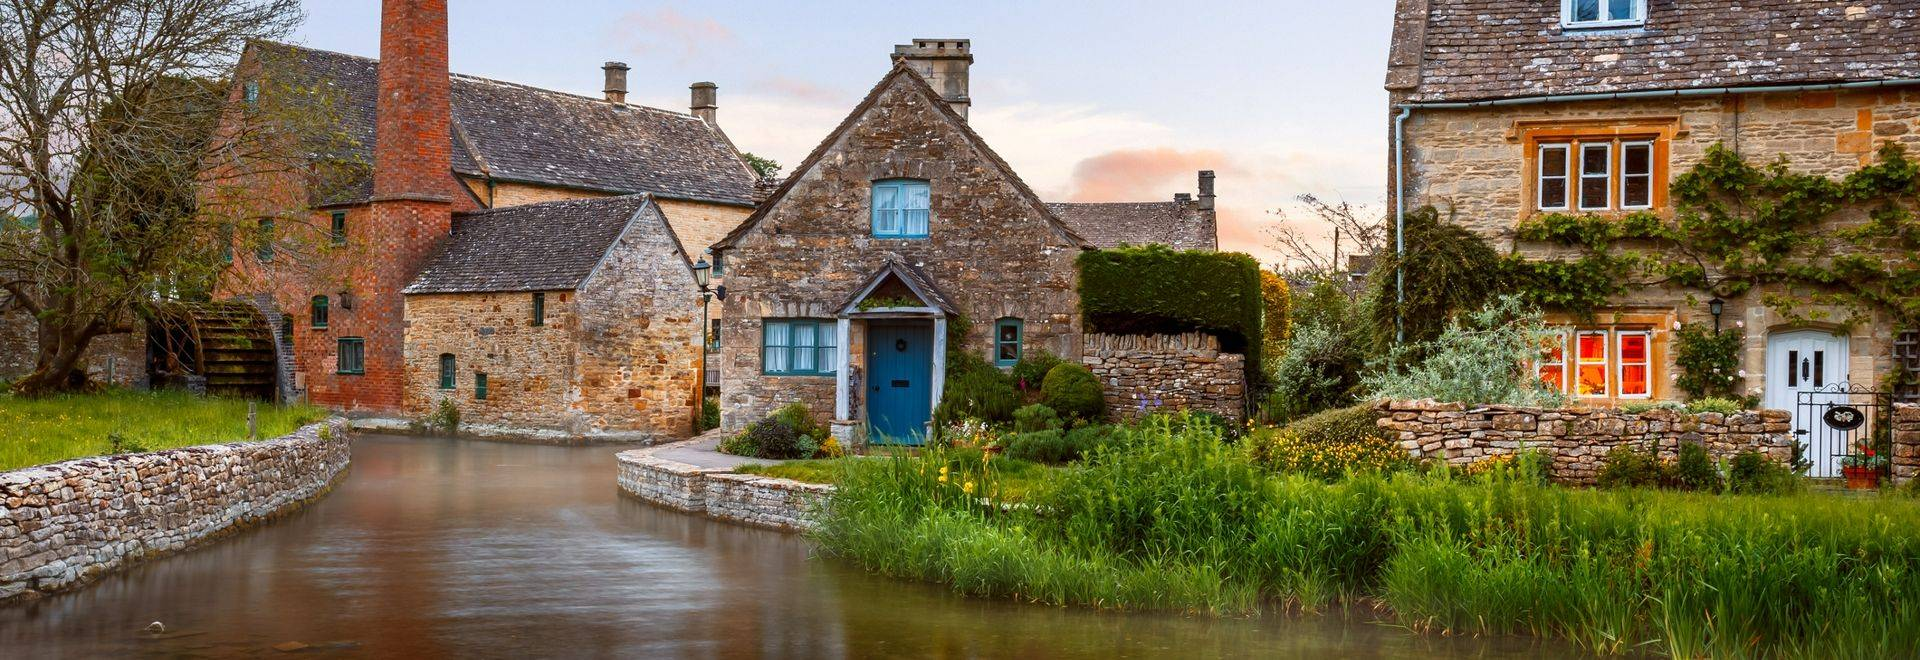 The Old Mill at Lower Slaughter, Cotswolds, Gloucestershire, England.